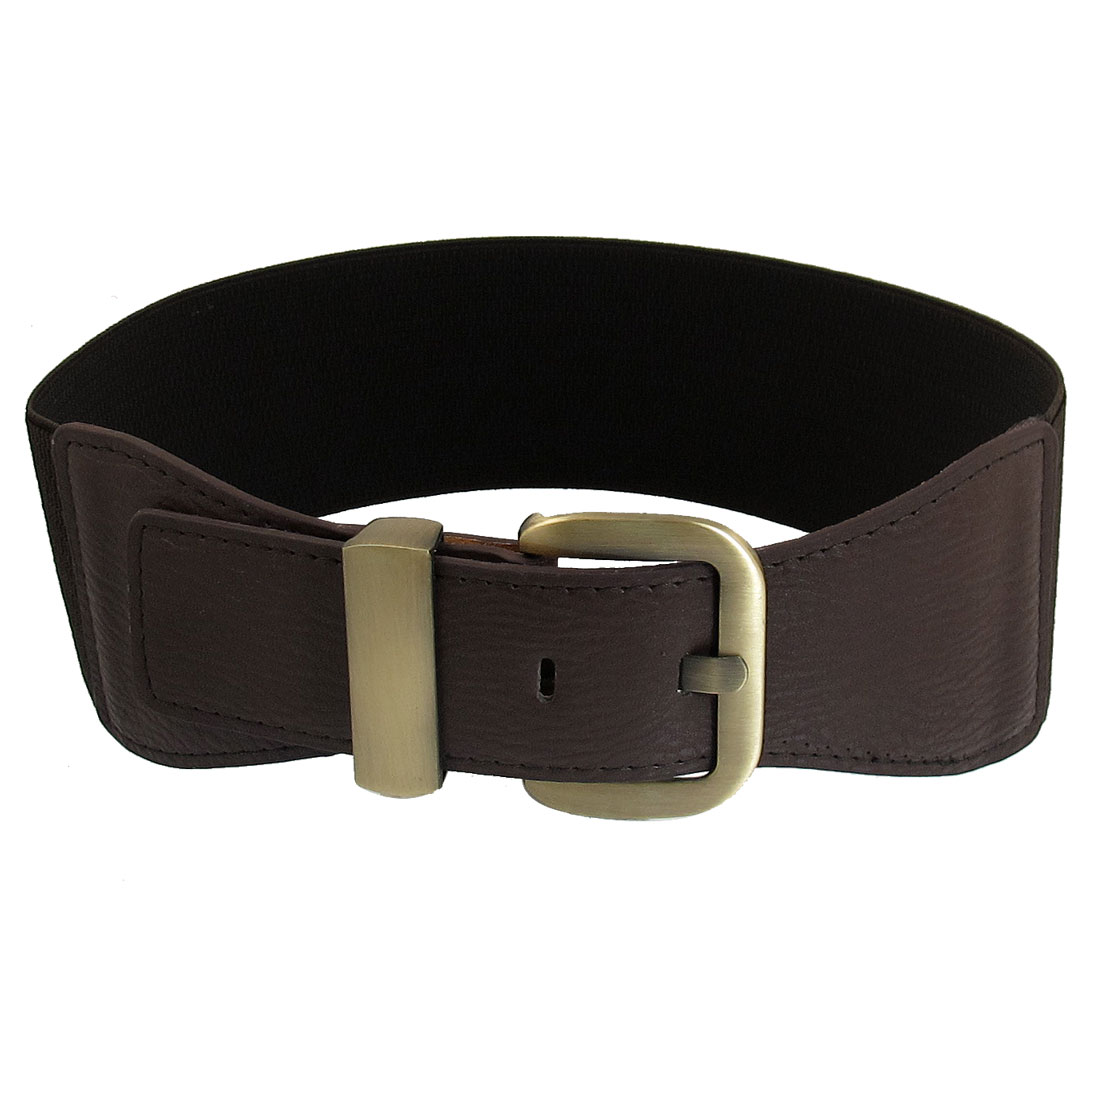 Lady Women Metal Single Prong Buckle Chocolate Color Stretchy Cinch Belt